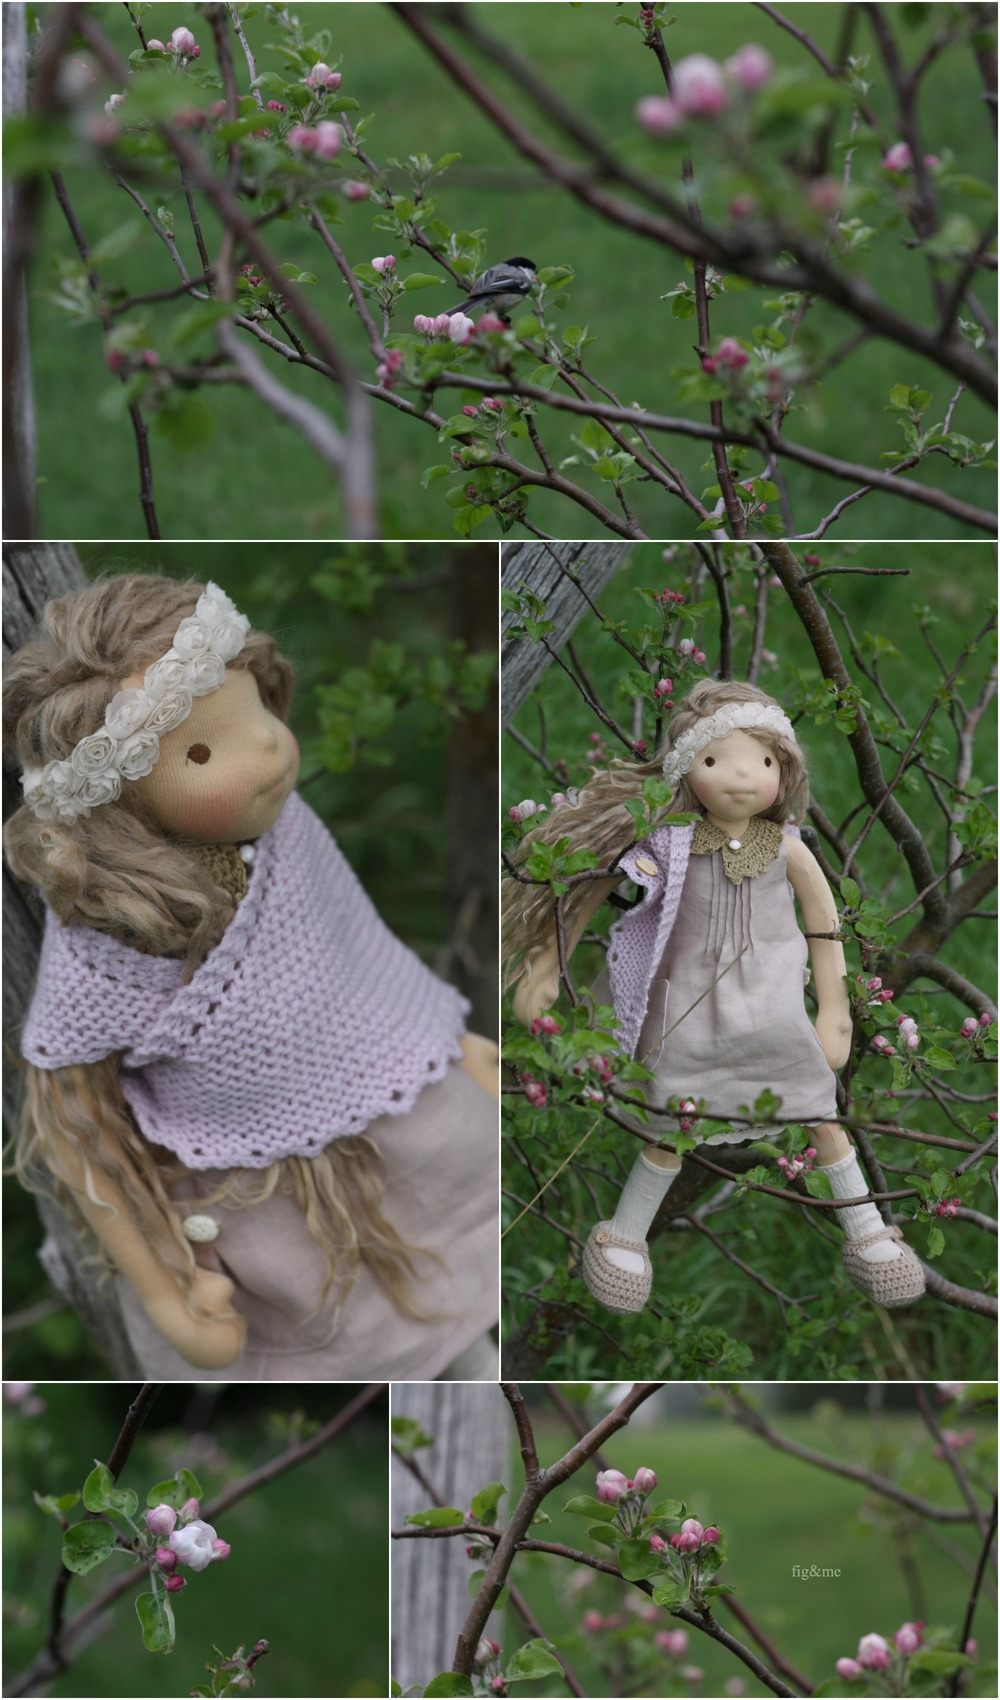 Pomona finds apple blossoms and chickadees, by Fig and me.